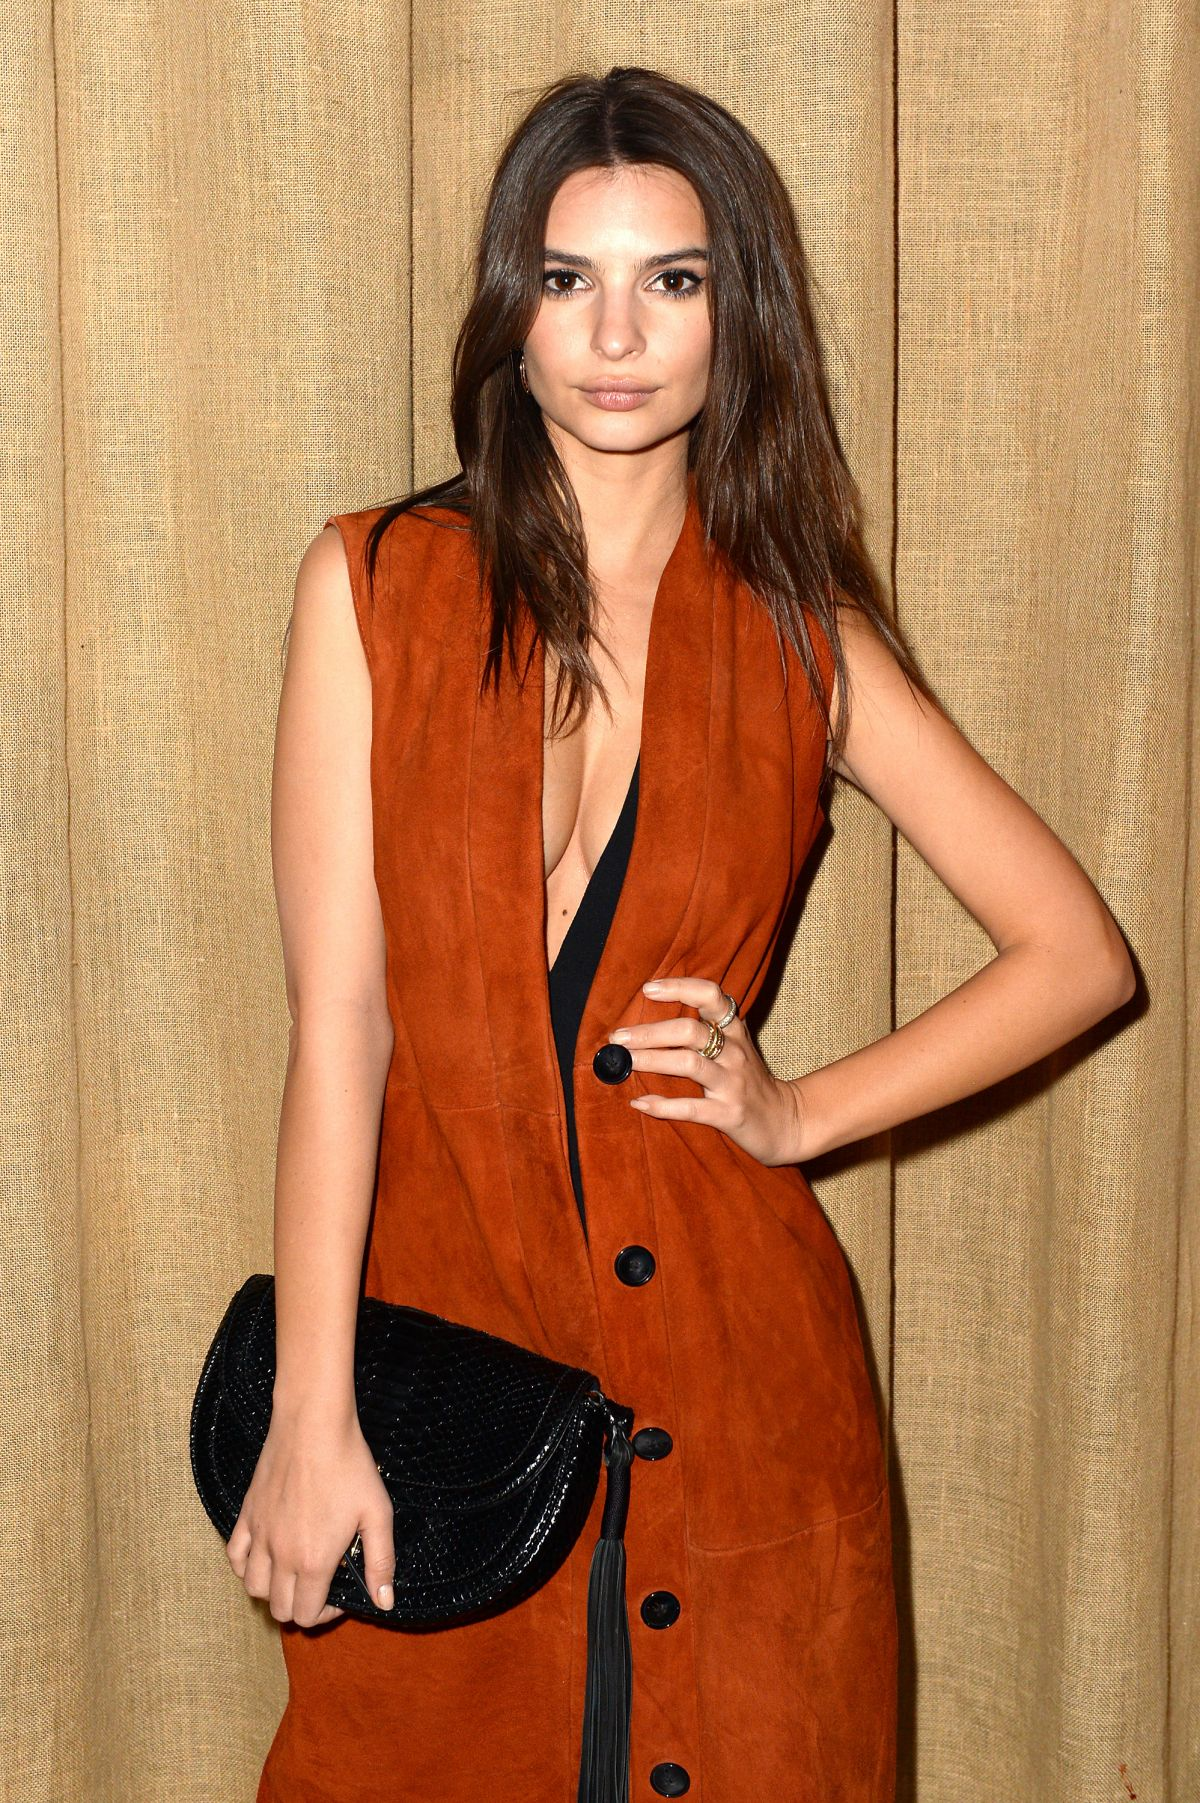 emily ratajkowski - photo #34